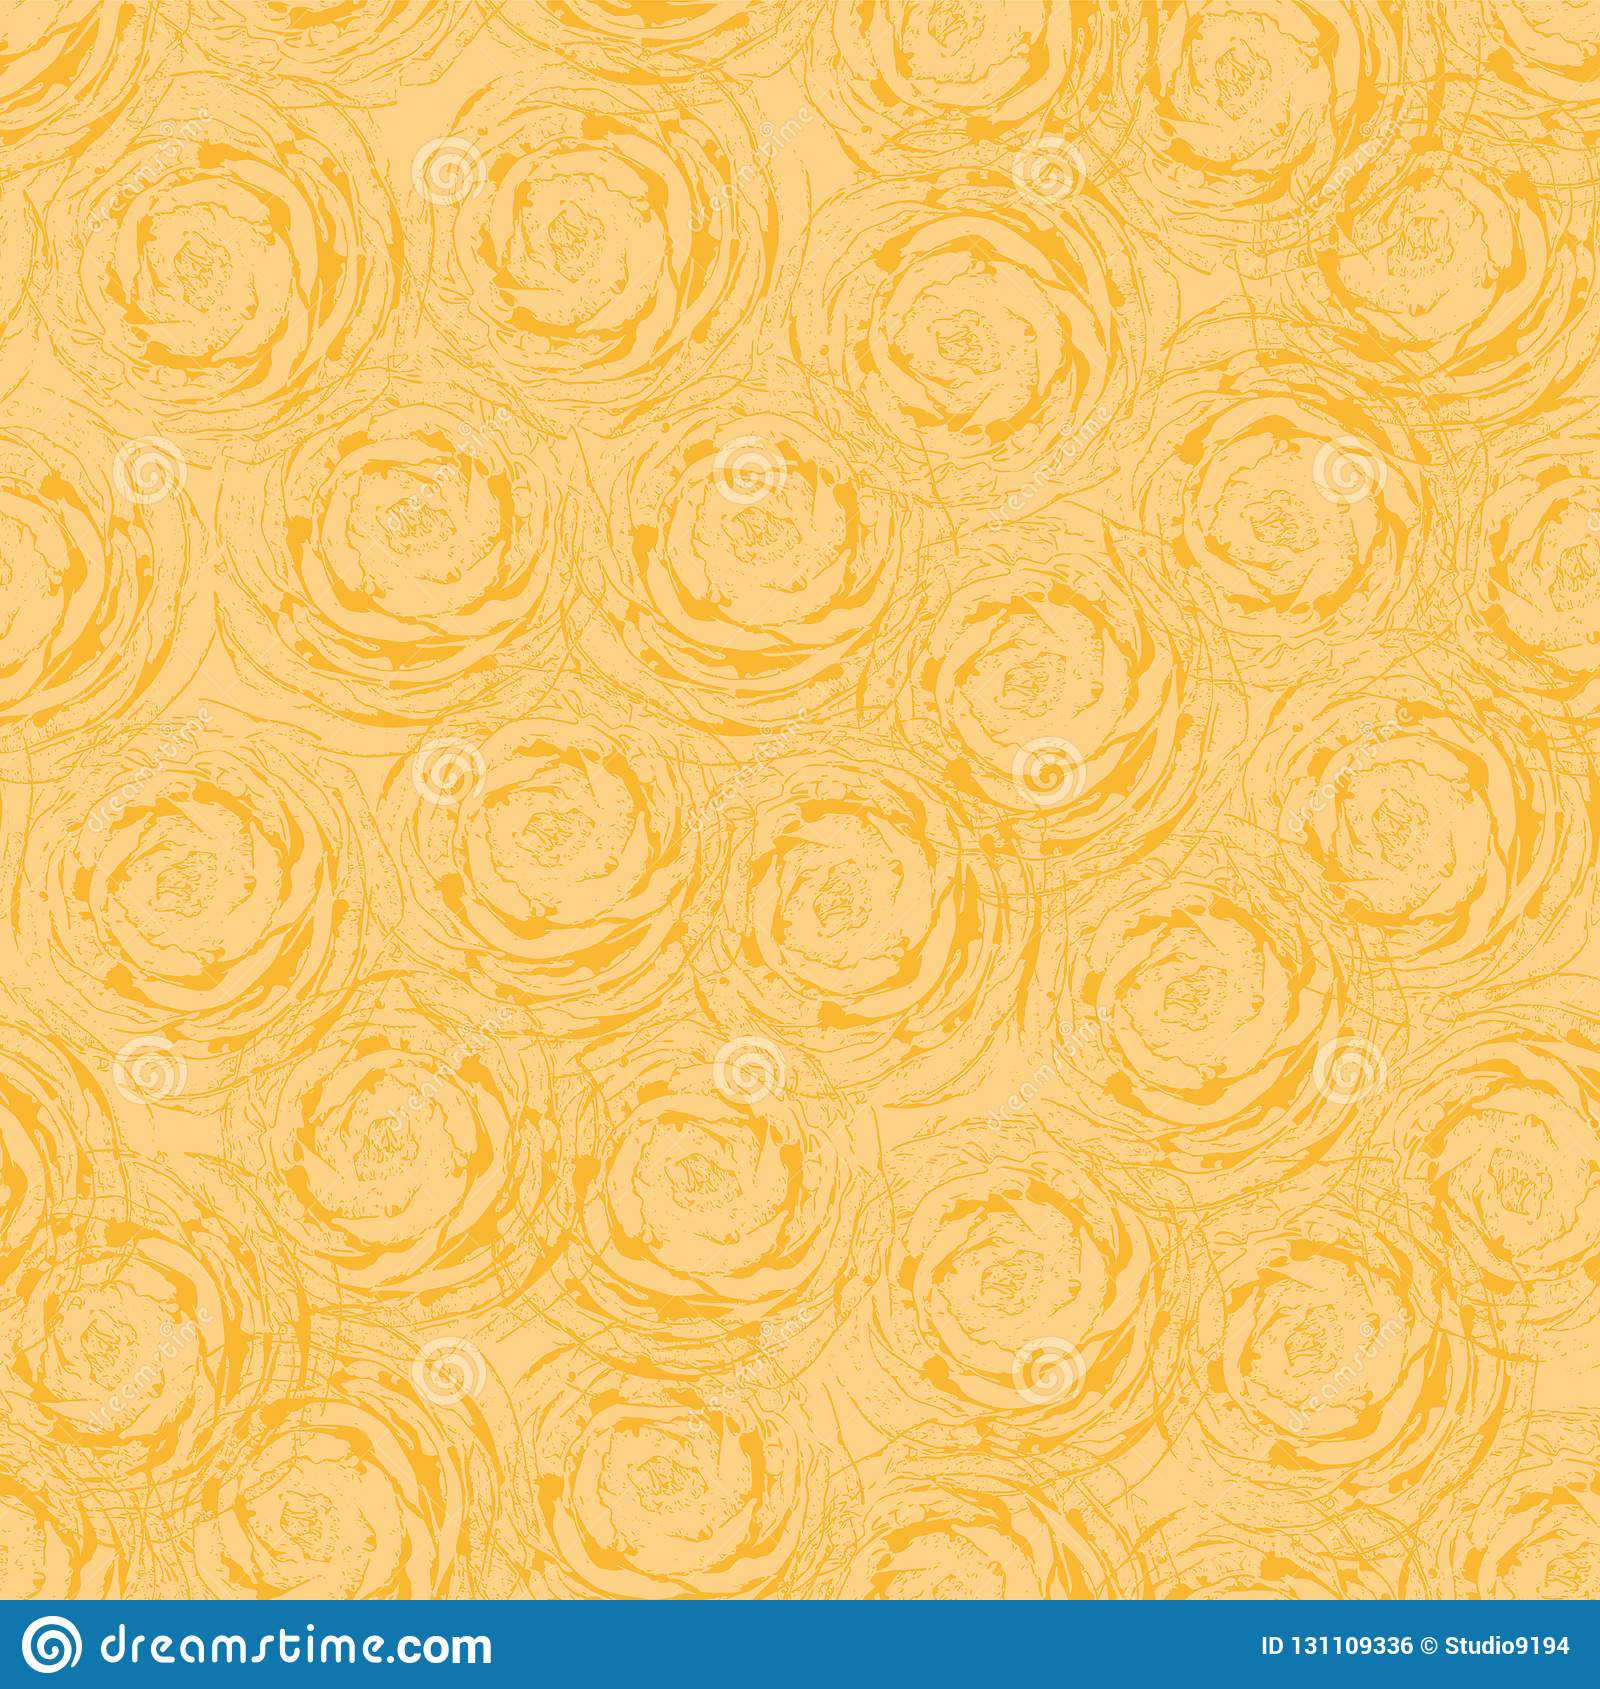 Abstract Roses Seamless Vector Background Orange Flowers Modern